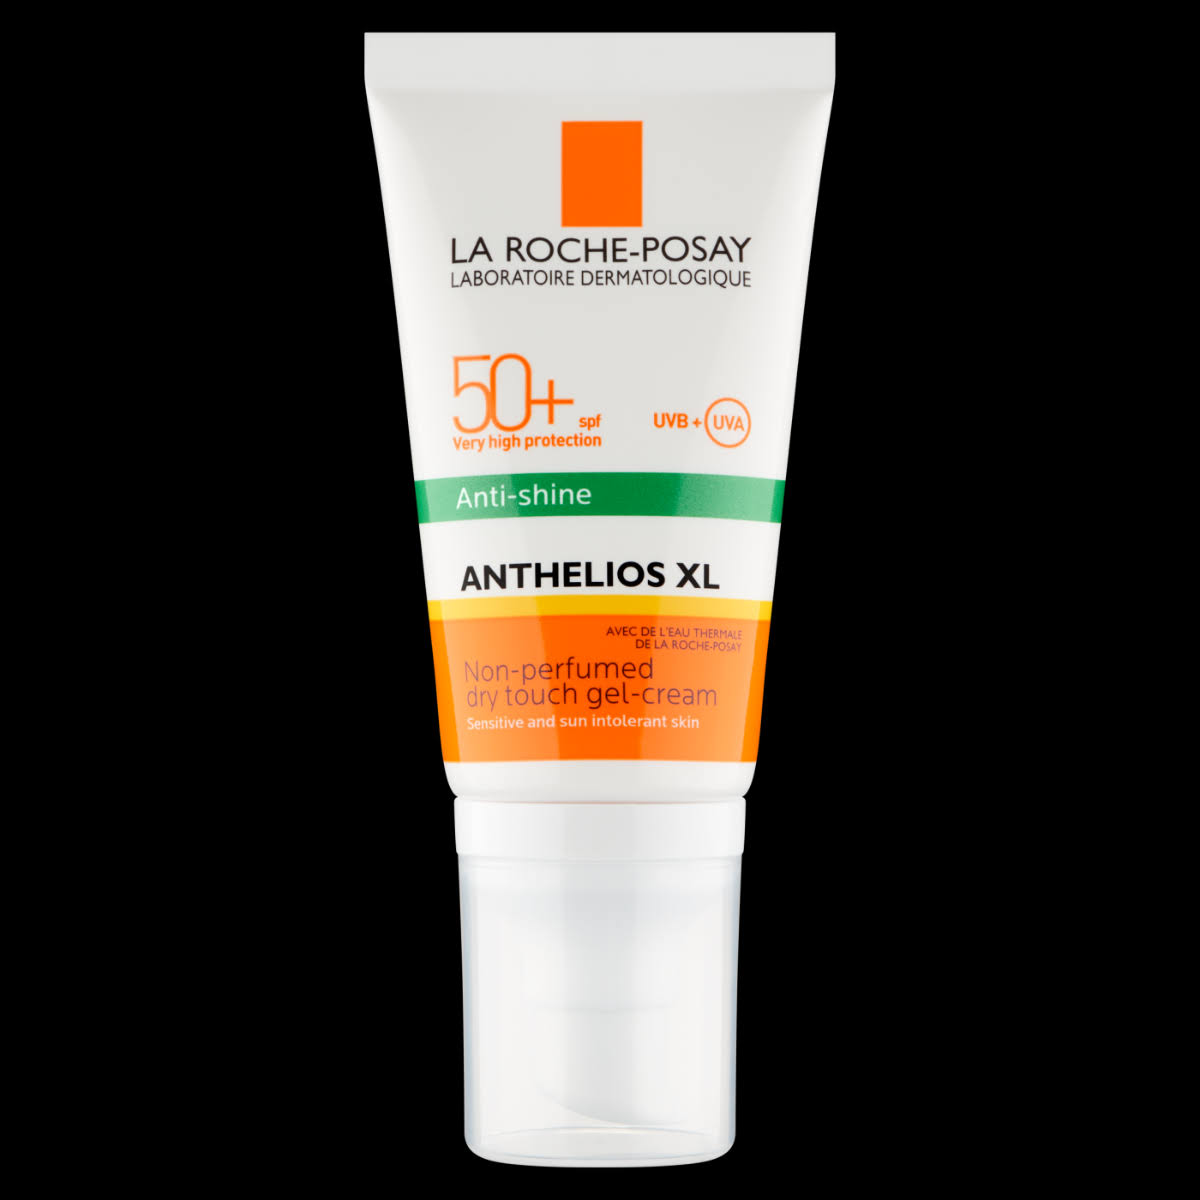 La Roche Posay Anthelios XL Gel Cream - SPF 50, 50ml